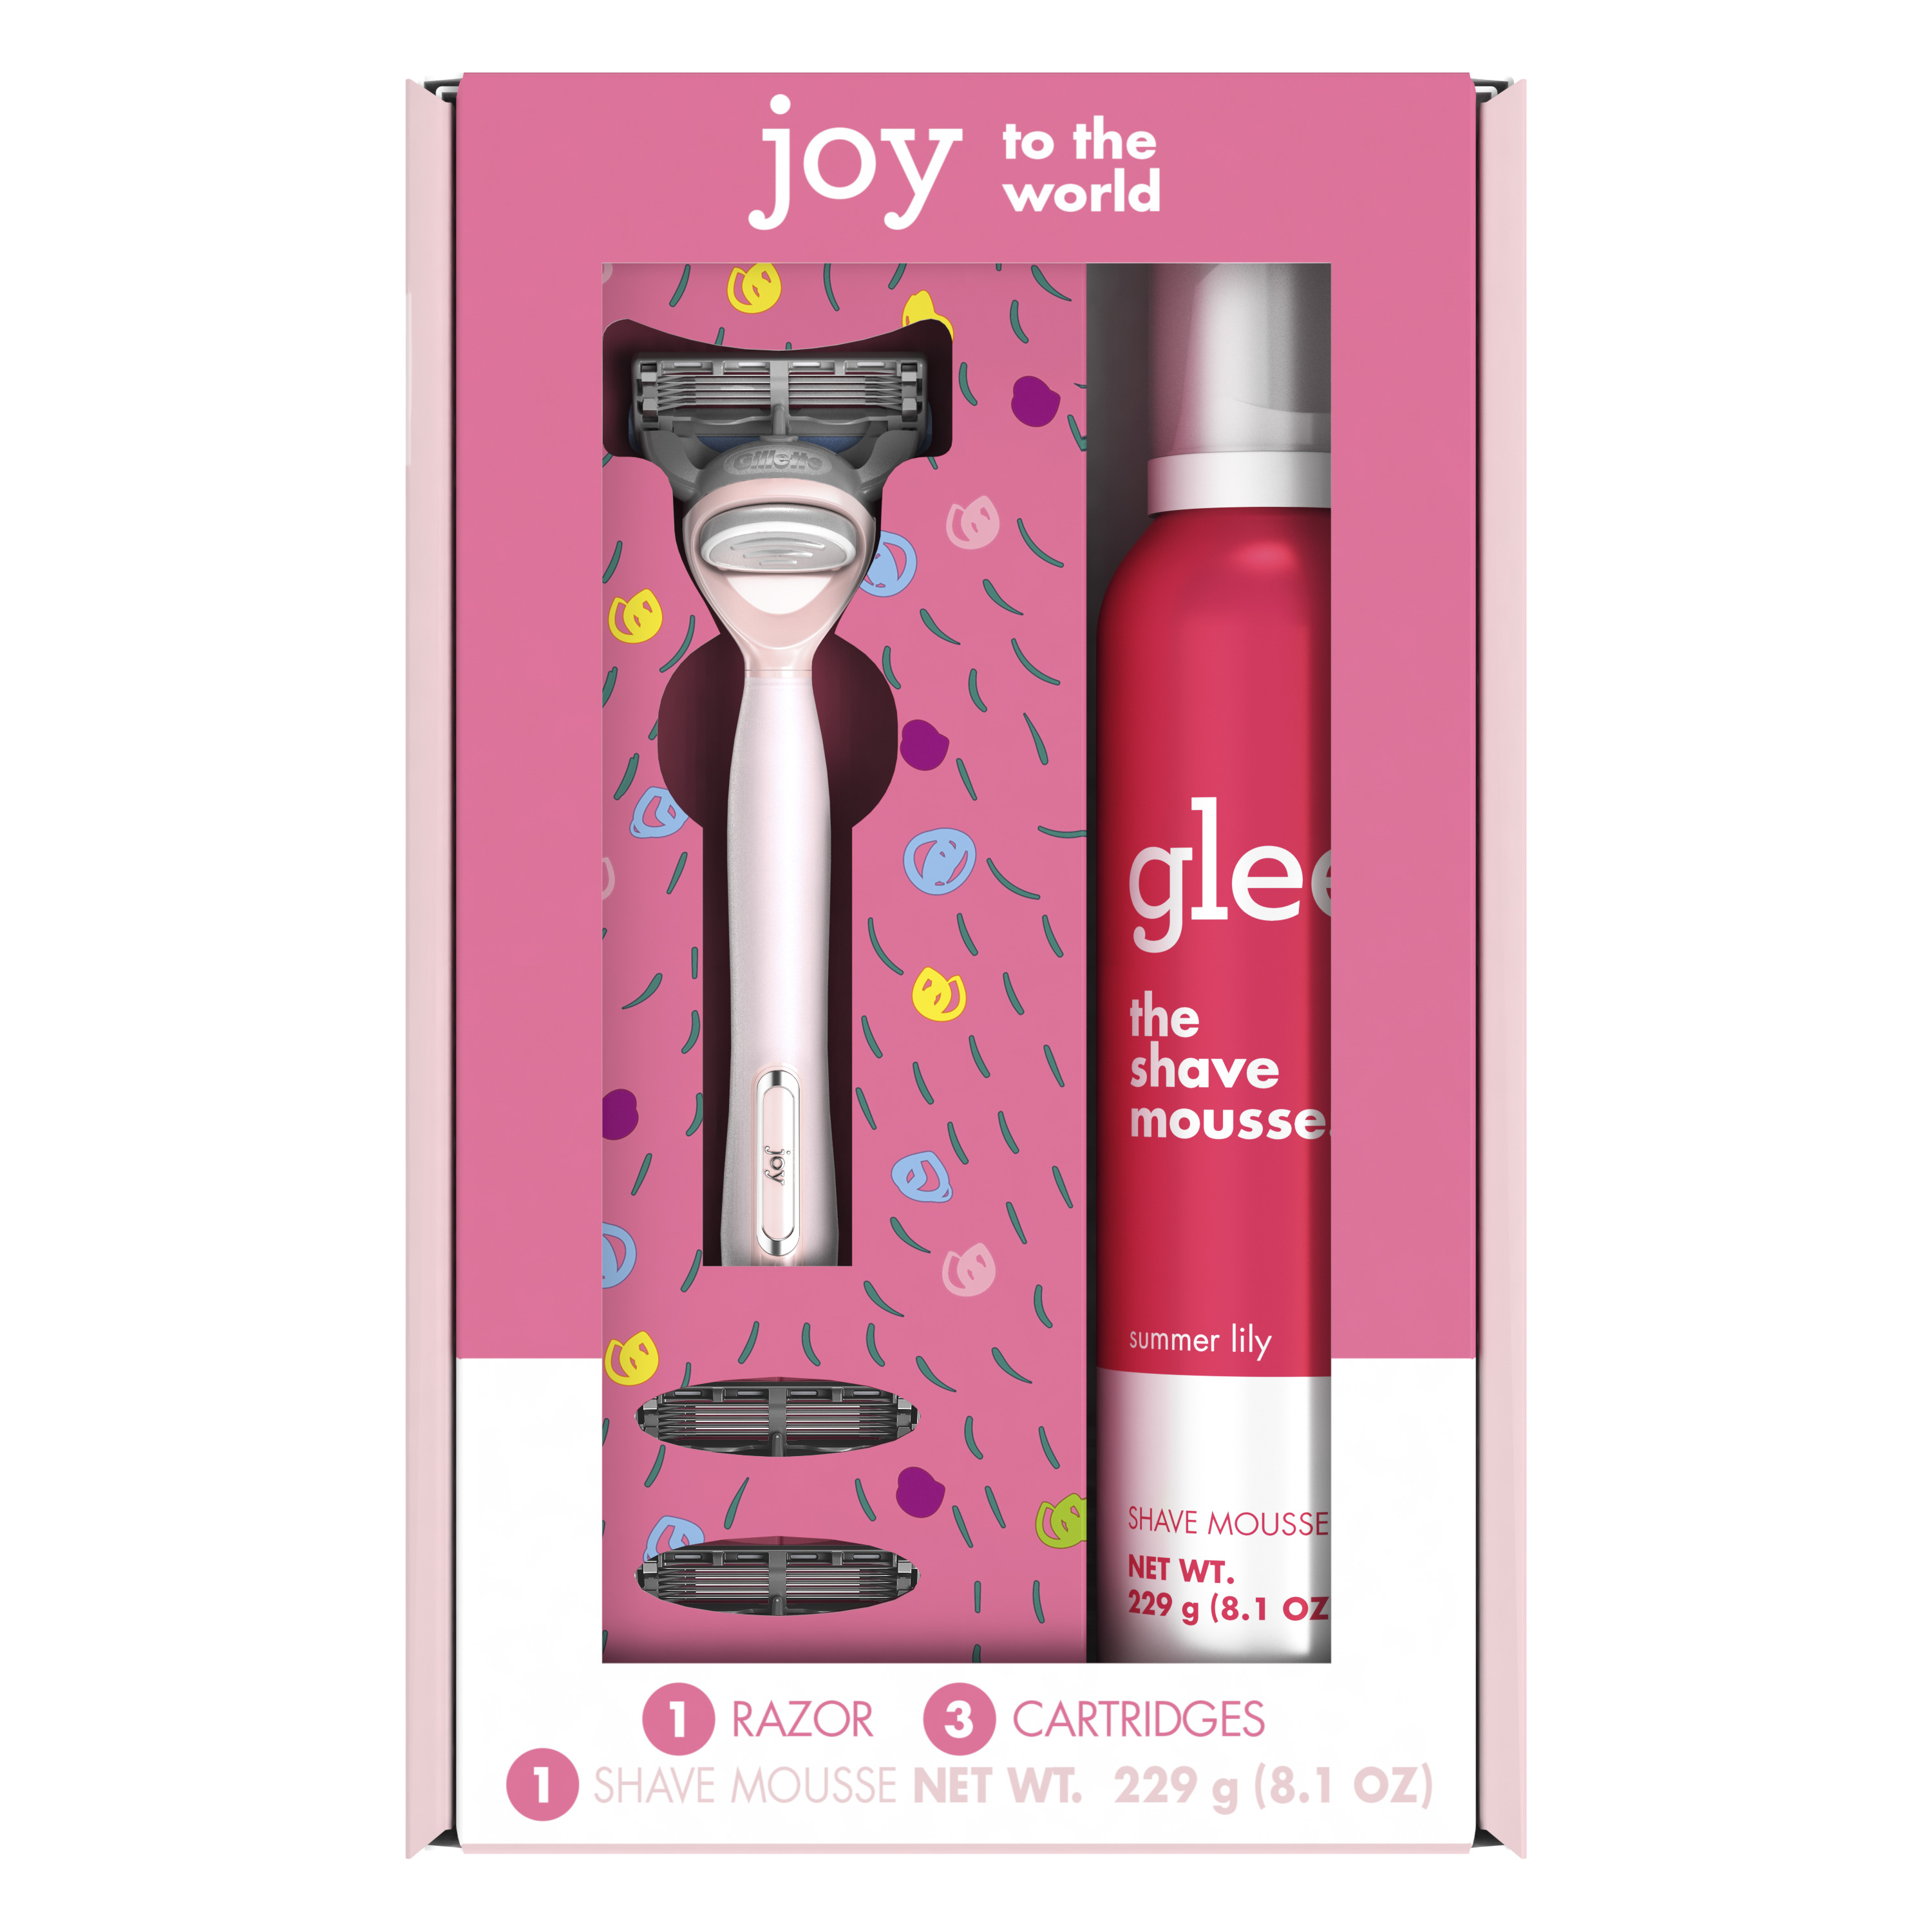 Joy Pink Women's Holiday Gift Set including 1 Handle, 3 Refills and a Shave Mousse